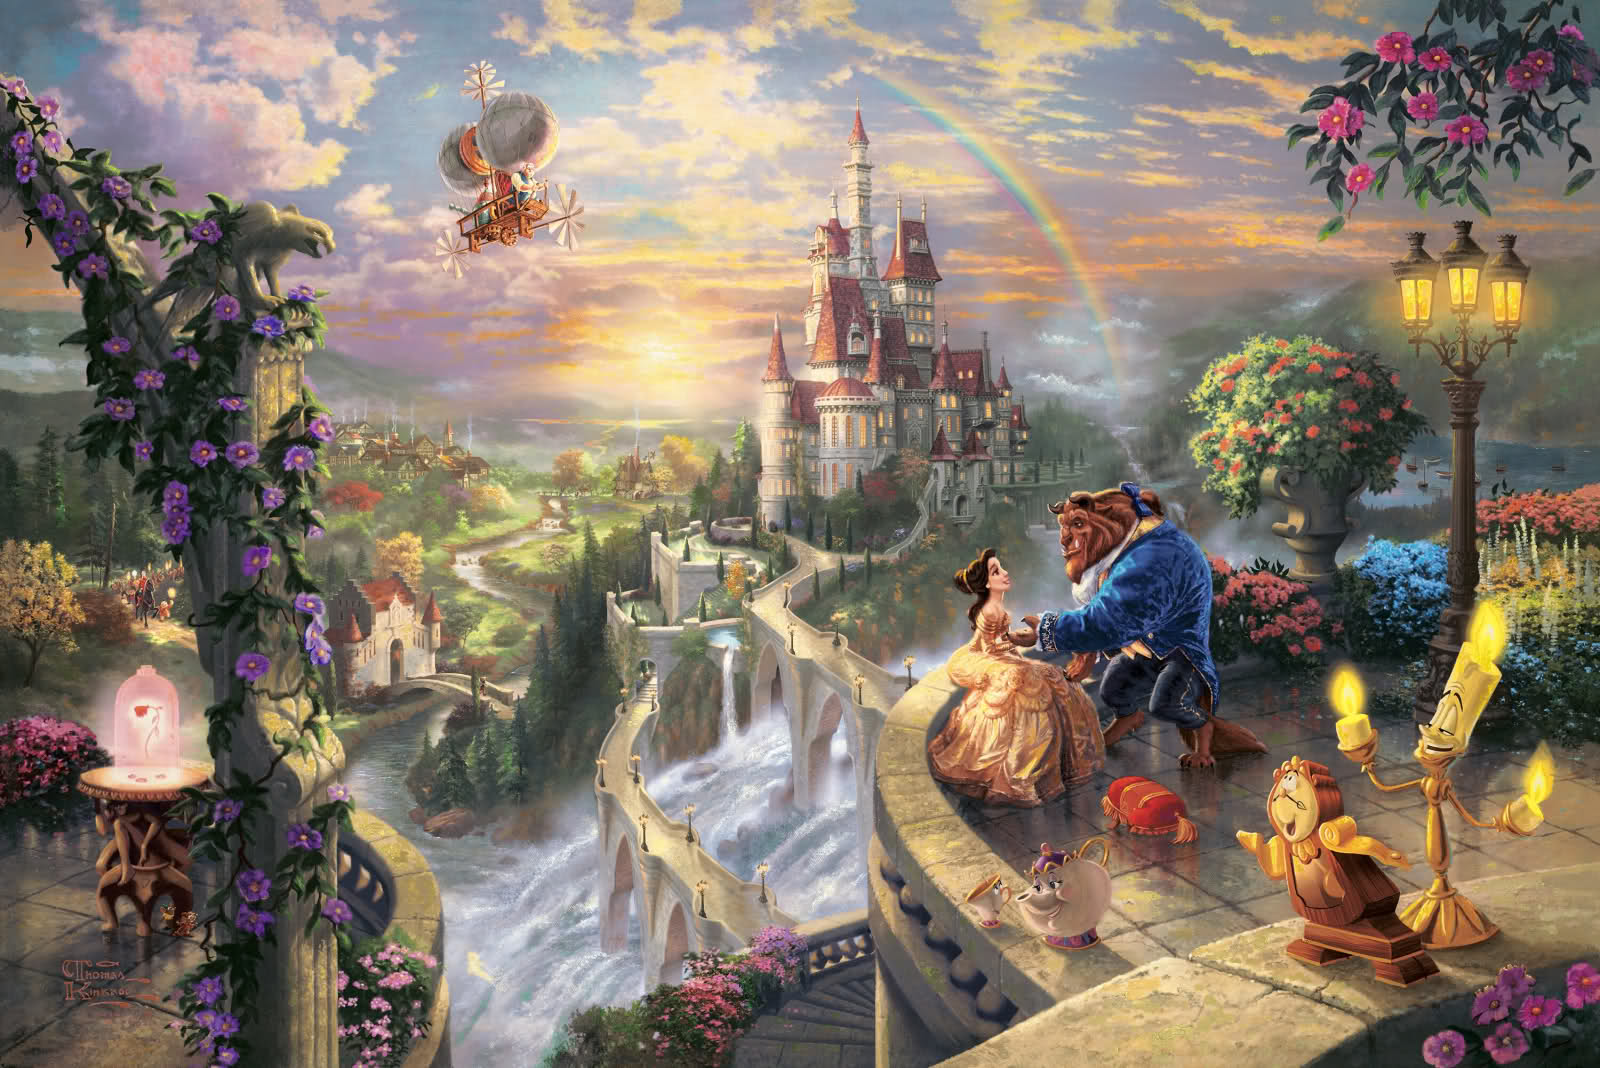 Tomas Kinkade - Page 6 Thomas-Kinkade-Disney-Dreams-disney-princess-31536124-1600-1068